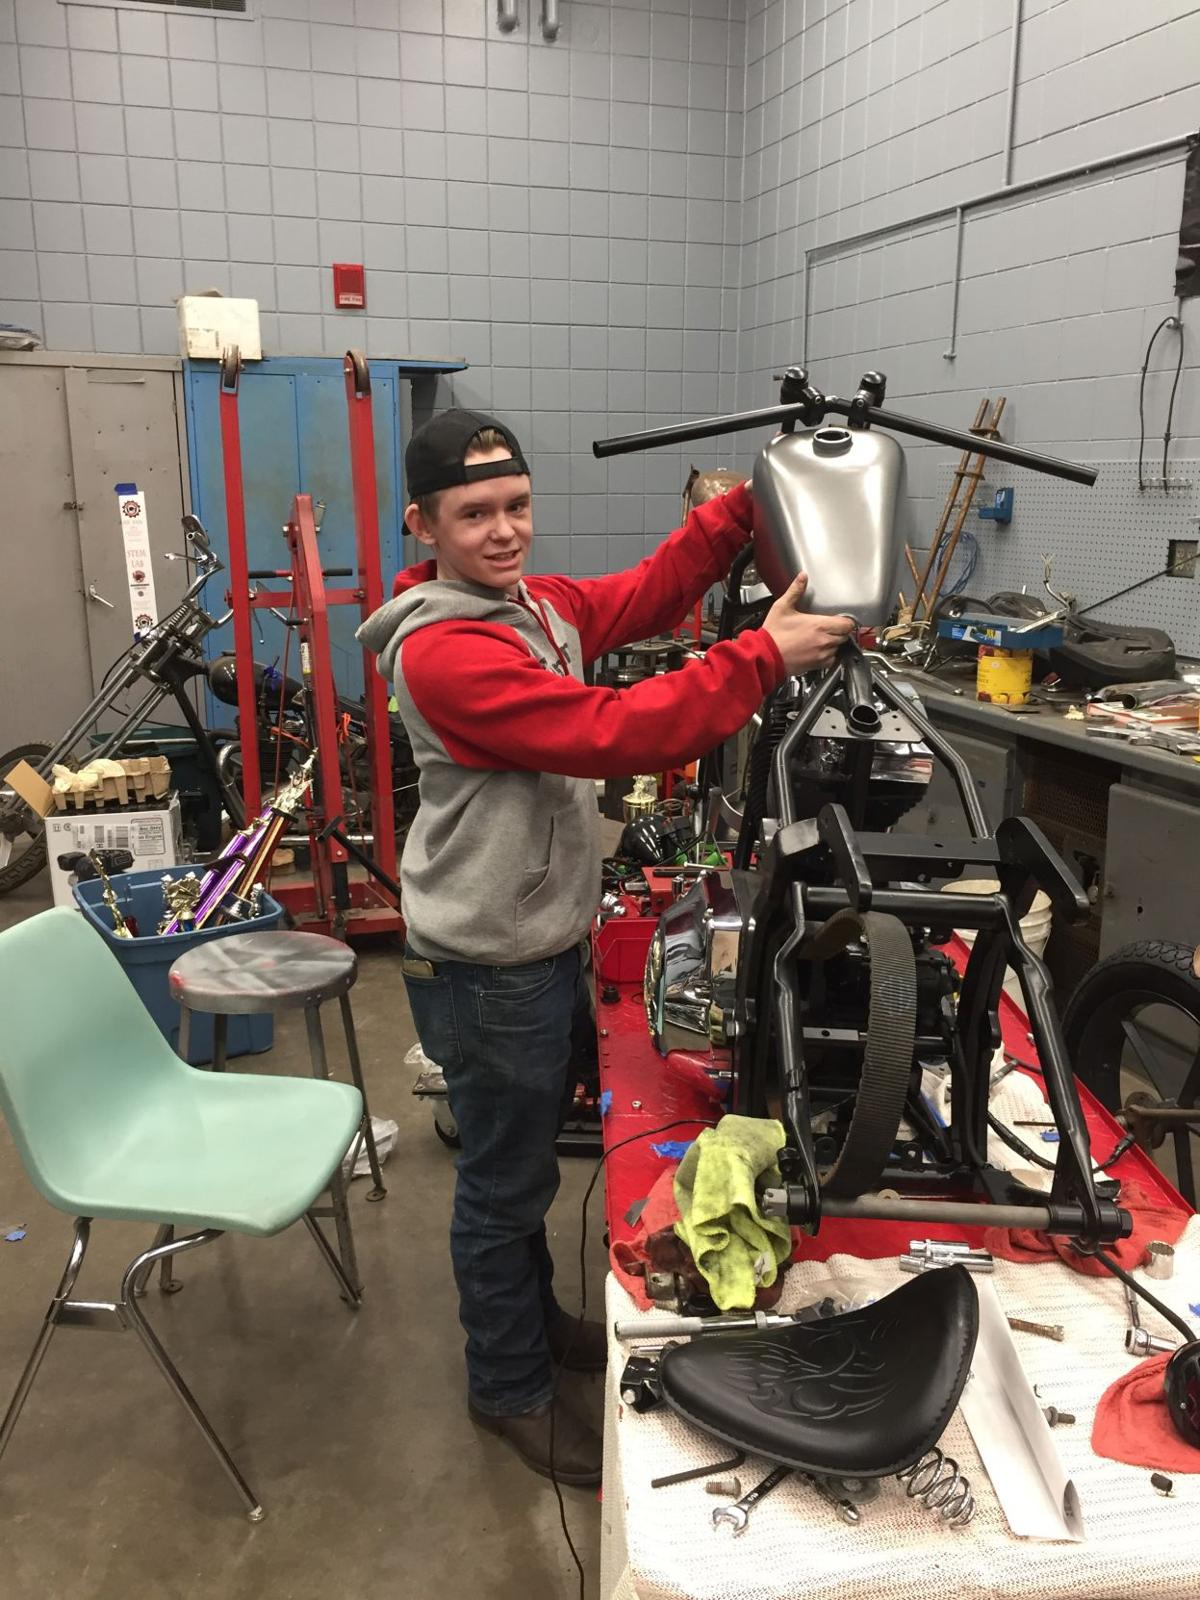 The fast lane to learning: Lakeville North students build